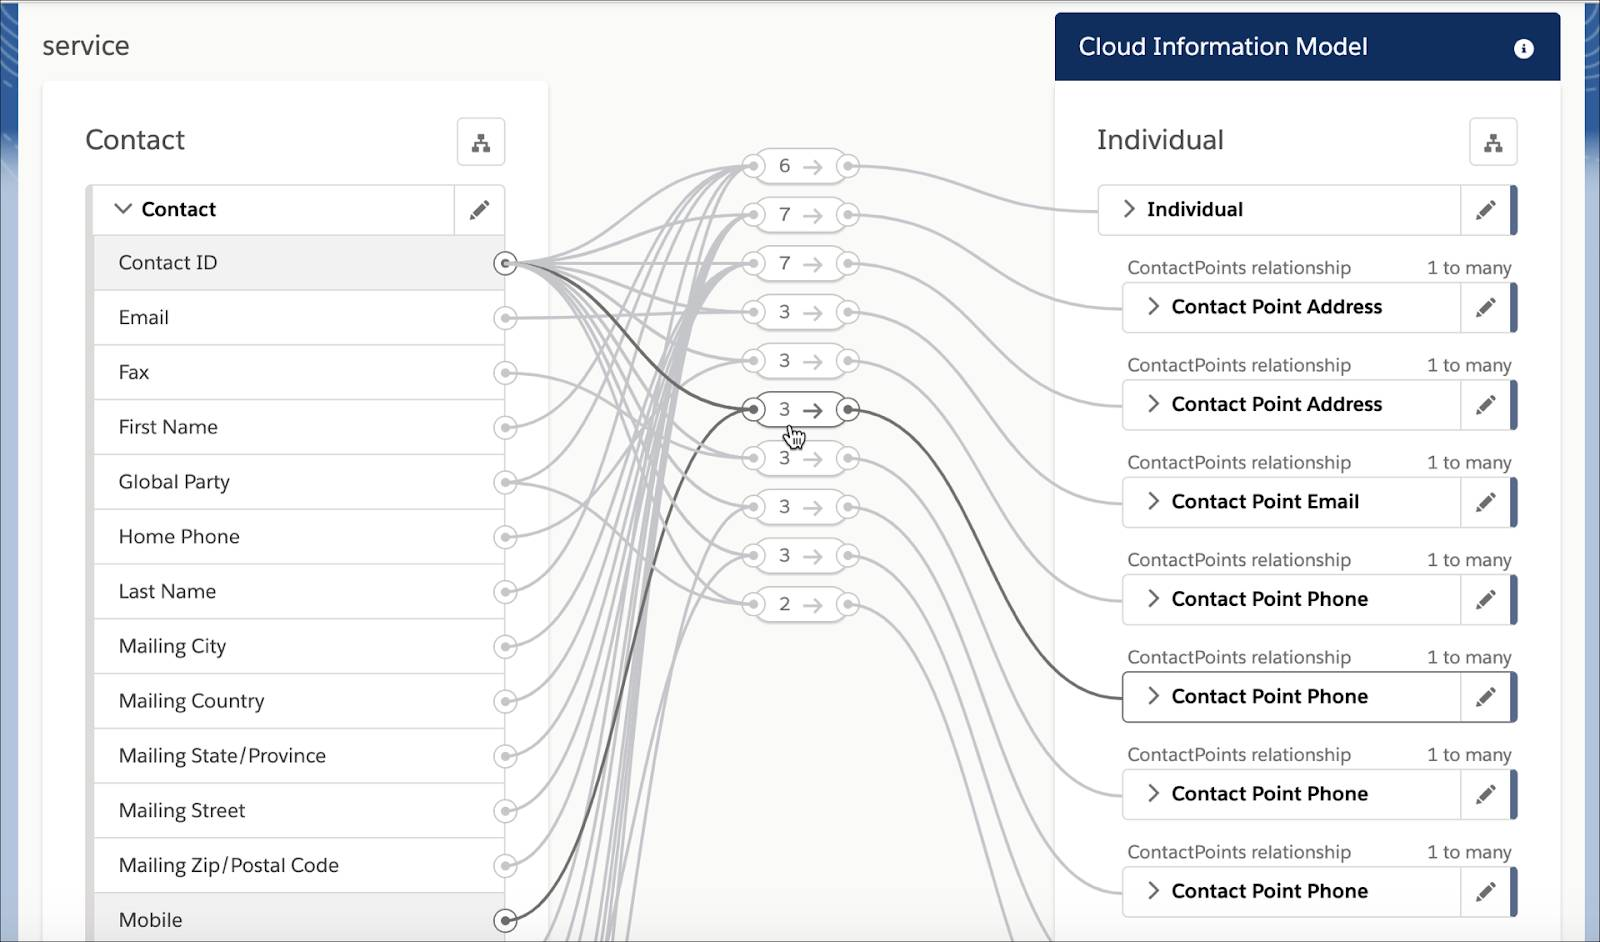 Data mapped between the Contact object in a Service Cloud org with the Contact Point Phone entity in ClM.